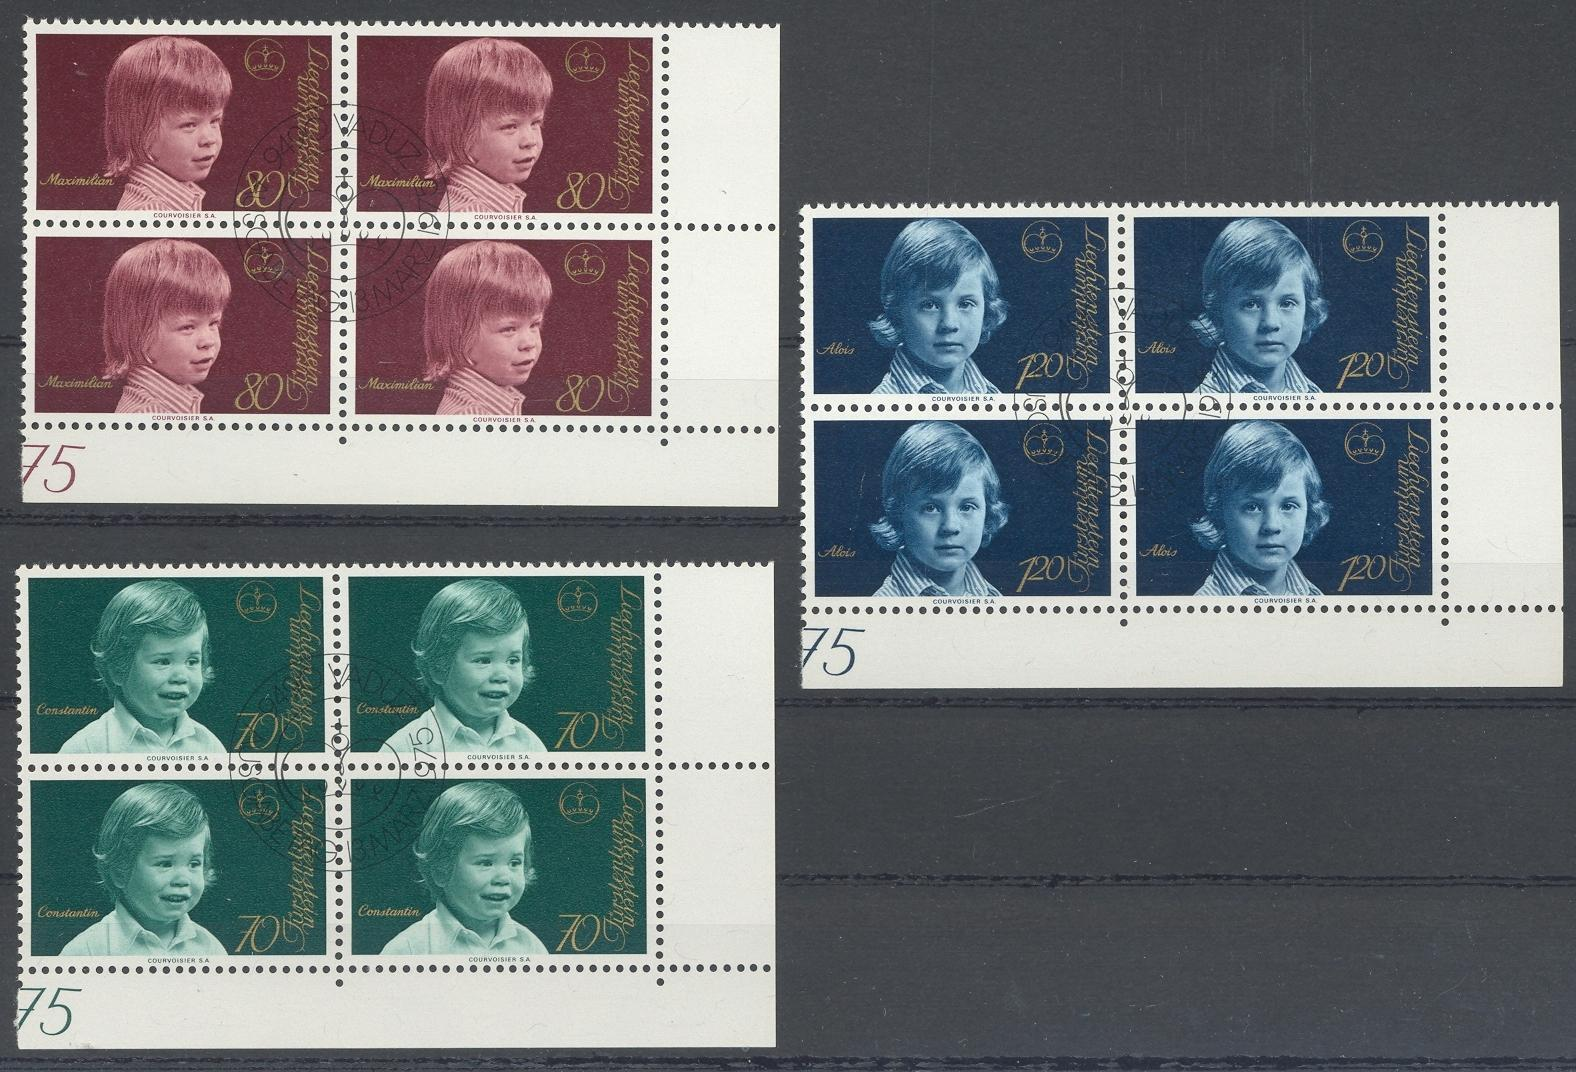 Stamps with Royalty from Liechtenstein (image for product #032250)